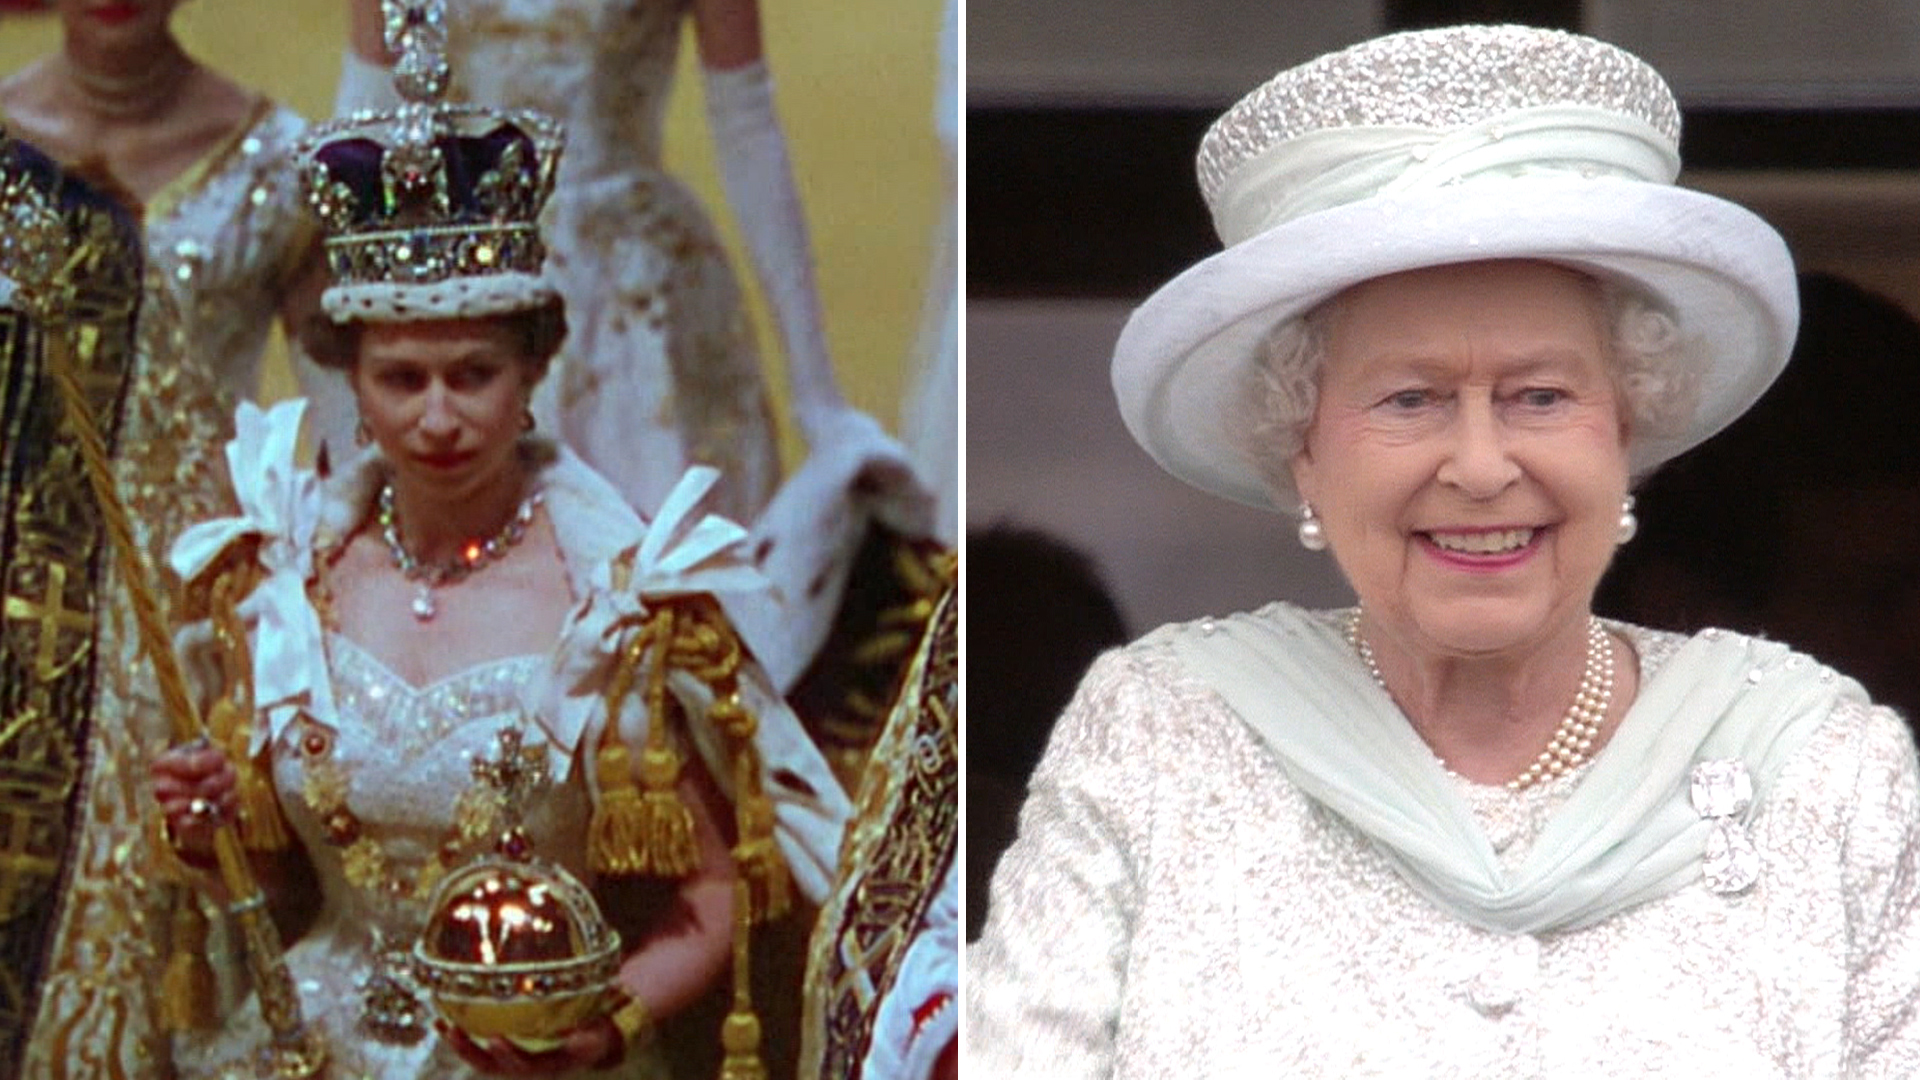 an analysis of the doubt of future foes by queen elizabeth Complete text of the poem by queen elizabeth i he doubt of future foes exiles my present joy, and wit me warns to shun such snares as threaten mine annoy.